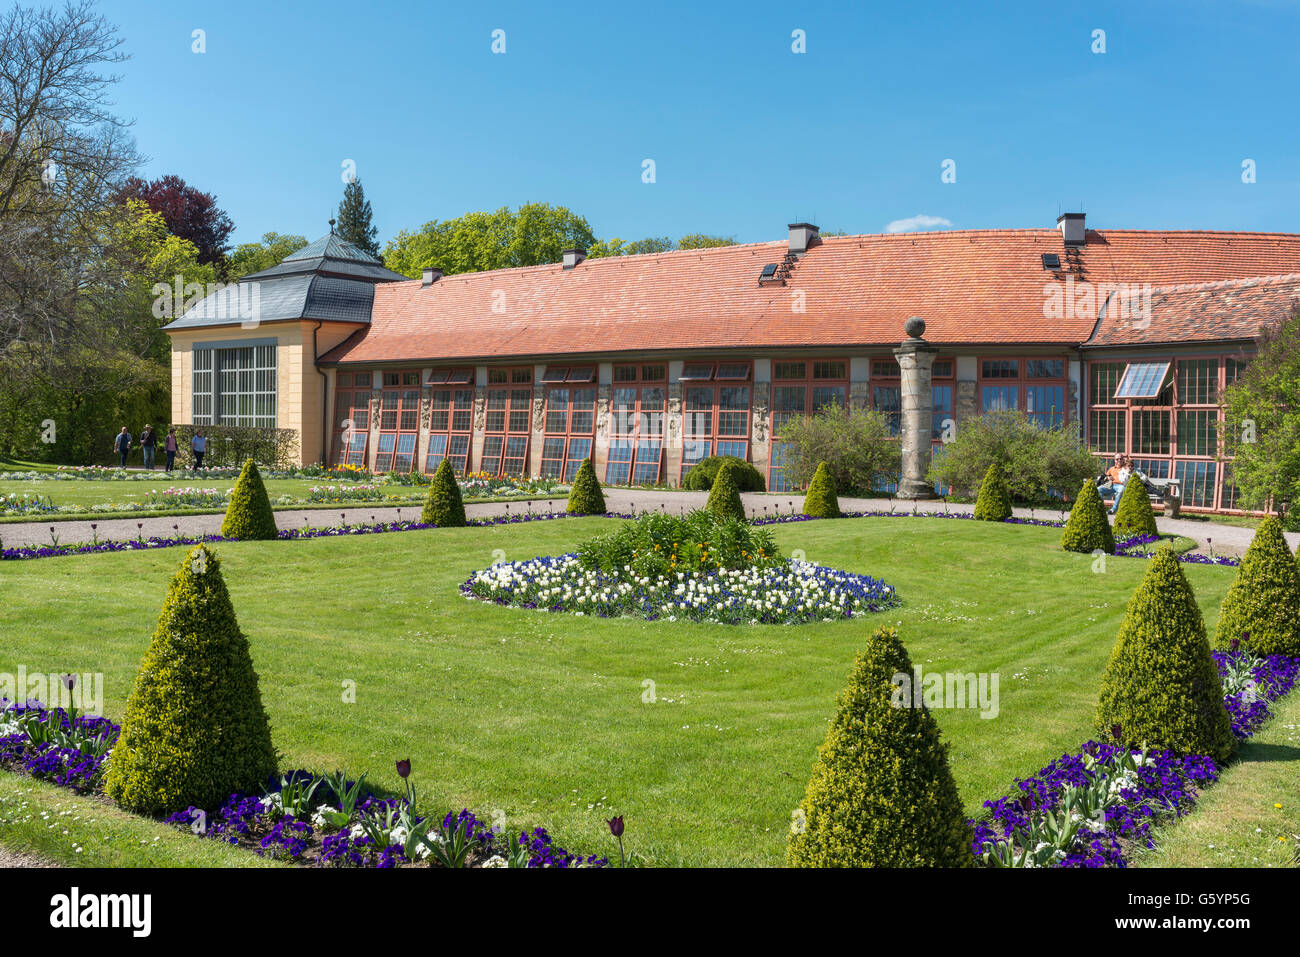 Orangery in palace gardens Belvedere, Weimar, Thuringia - Stock Image